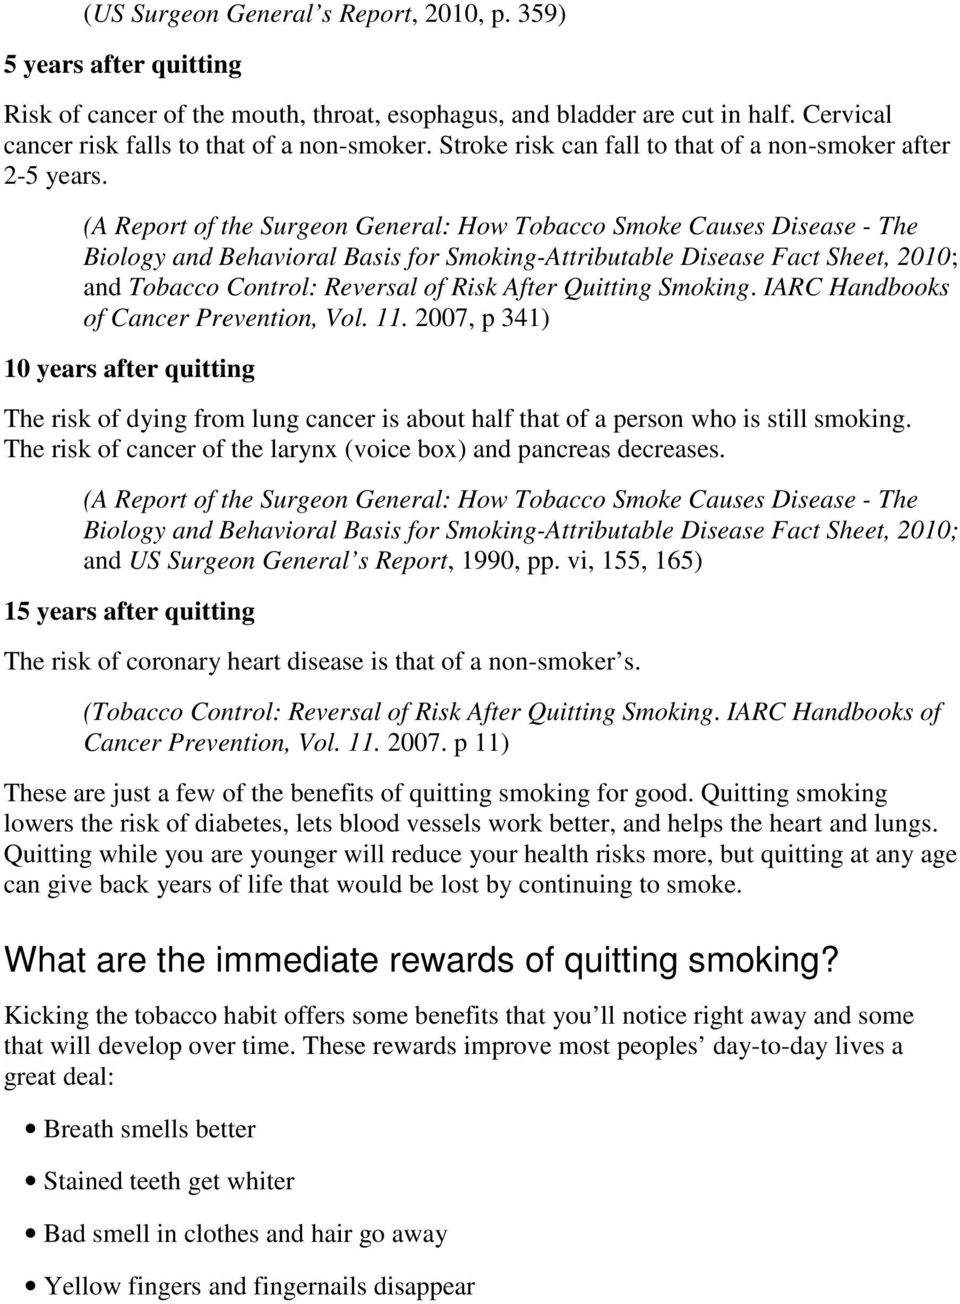 (A Report of the Surgeon General: How Tobacco Smoke Causes Disease - The Biology and Behavioral Basis for Smoking-Attributable Disease Fact Sheet, 2010; and Tobacco Control: Reversal of Risk After